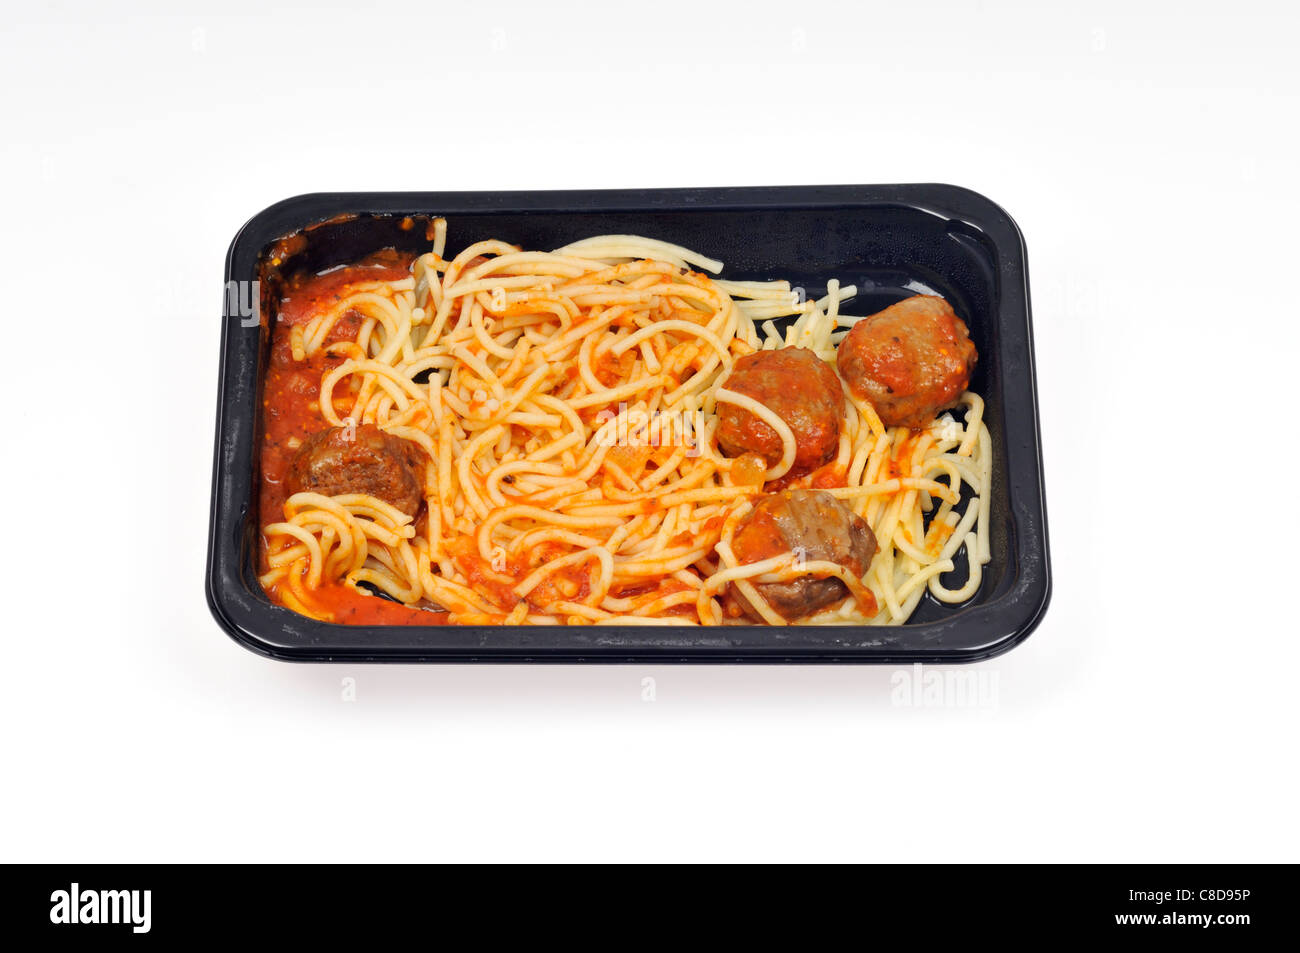 Tray of microwave cooked spaghetti and meatballs readymeal on white background, cutout. - Stock Image